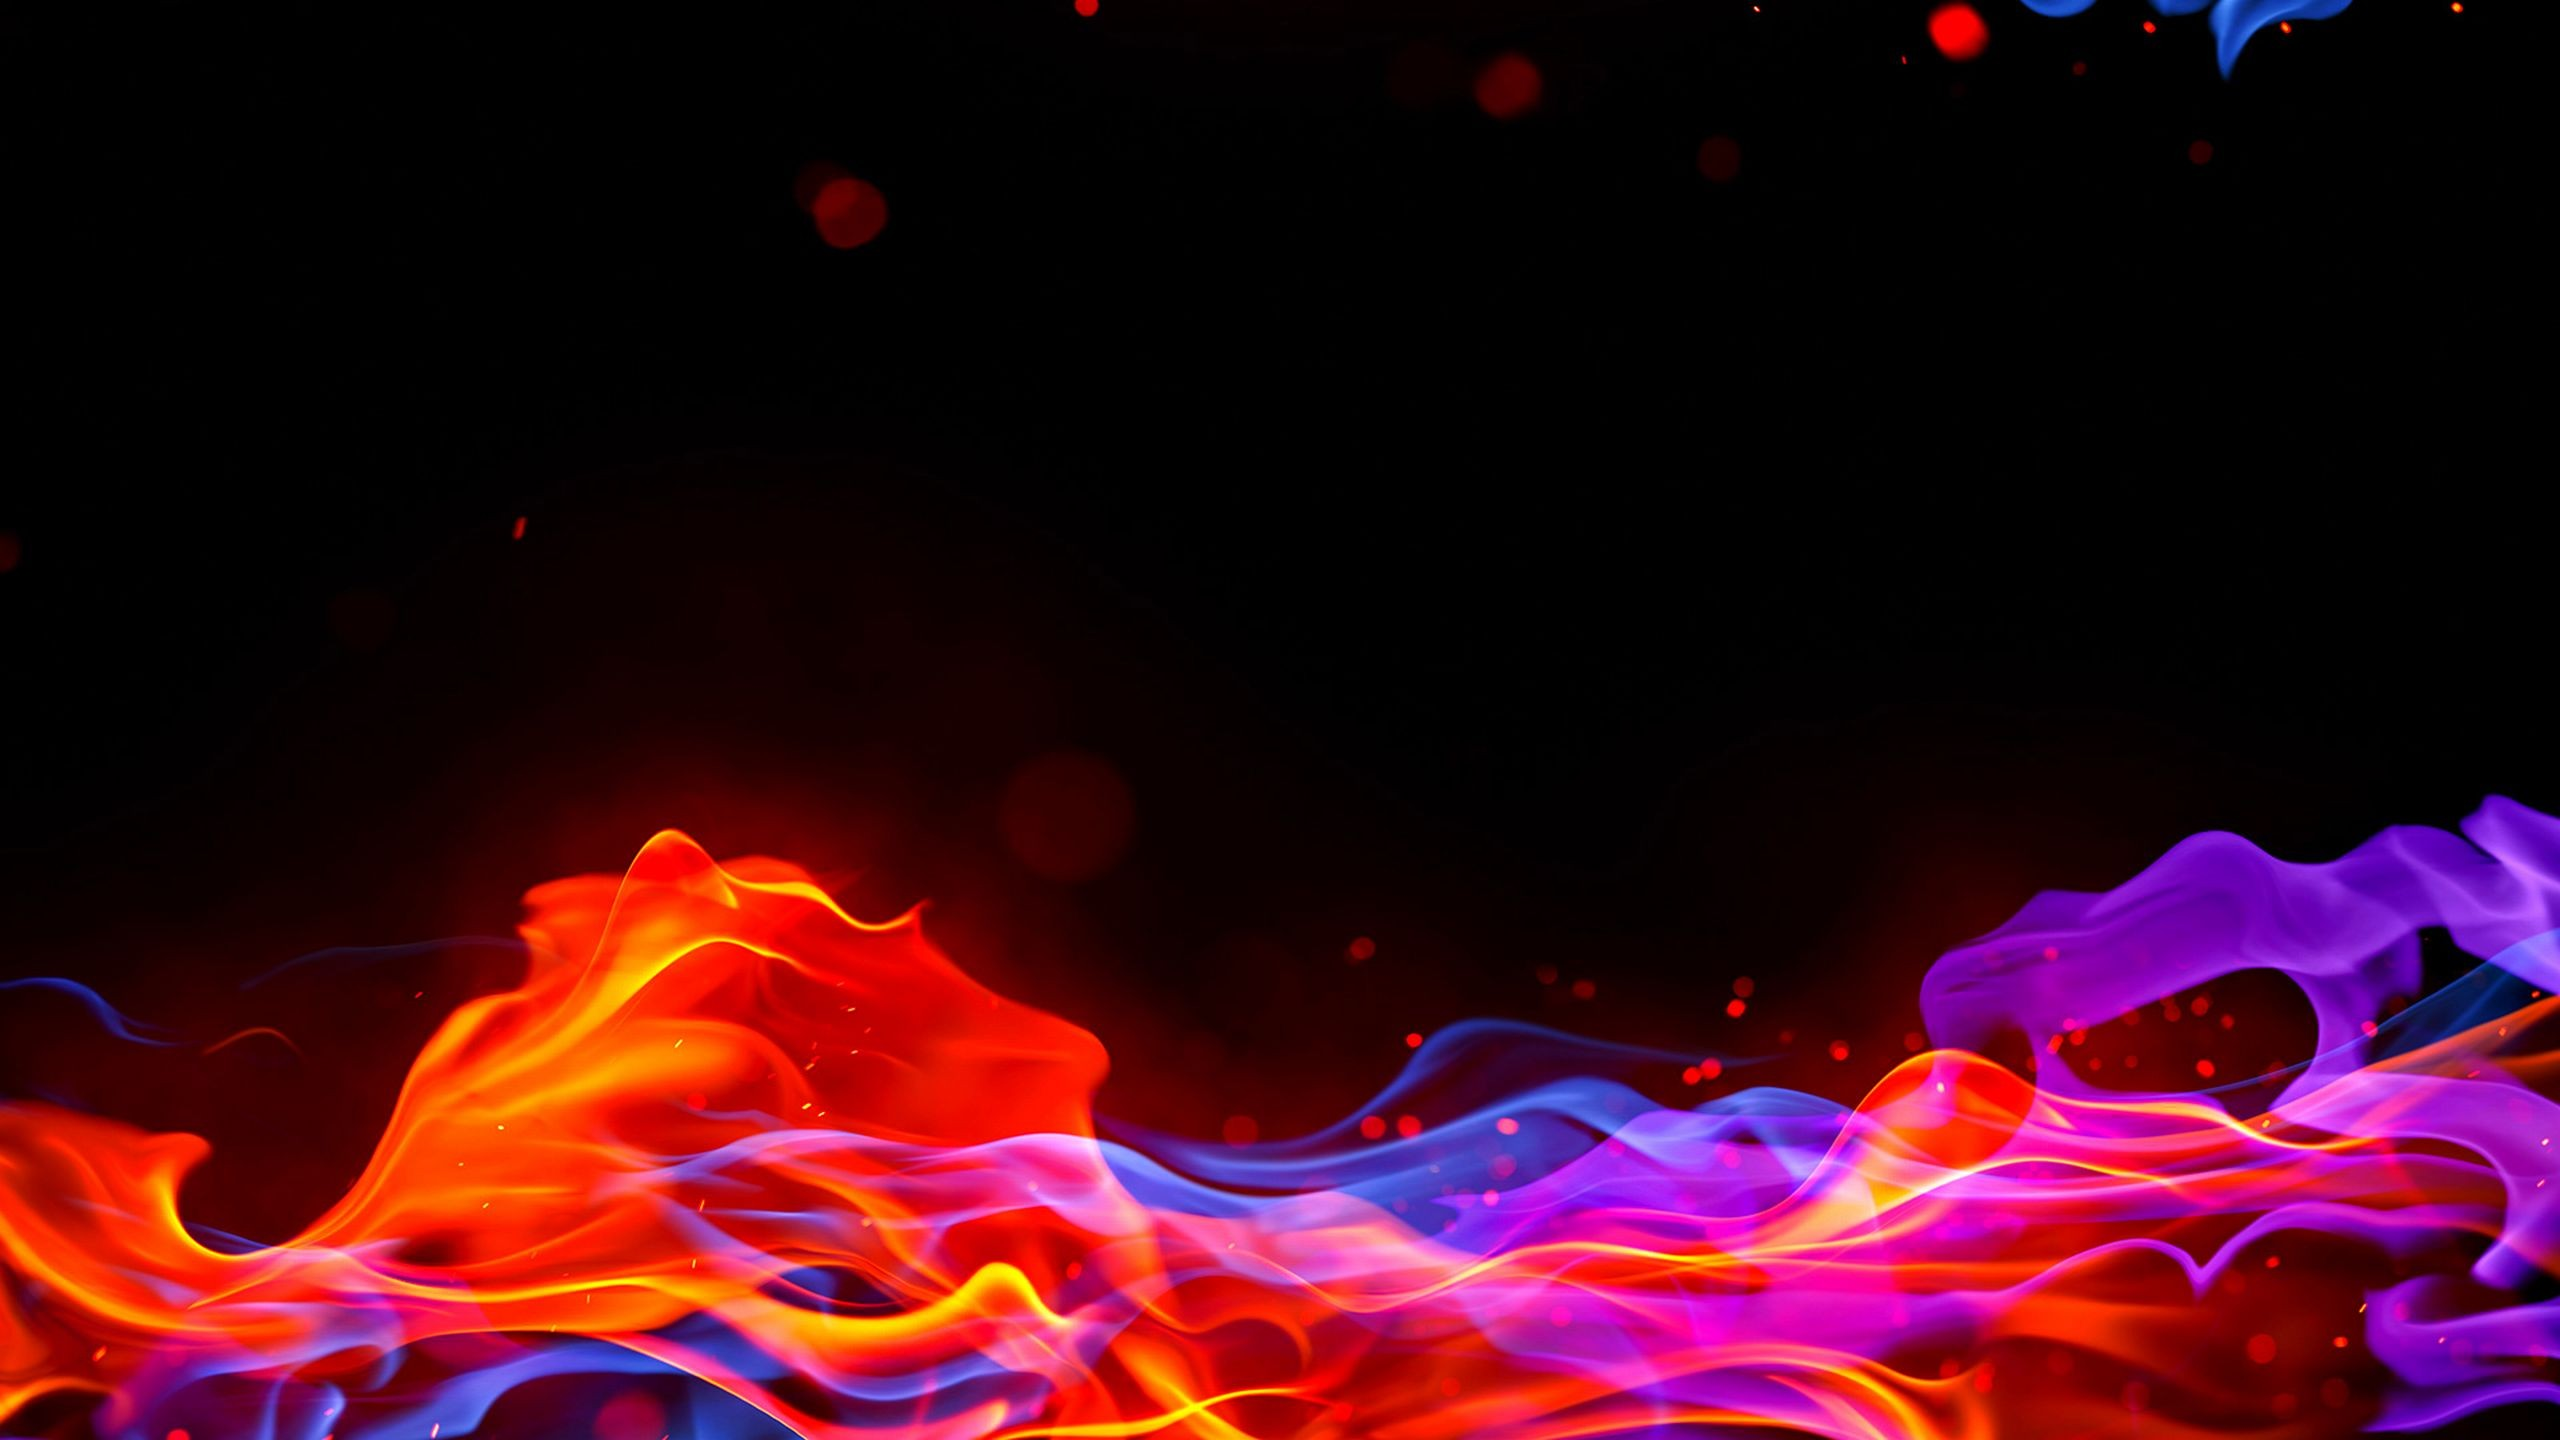 Abstract Flames Multicolor Wallpaper 2560x1440 20309